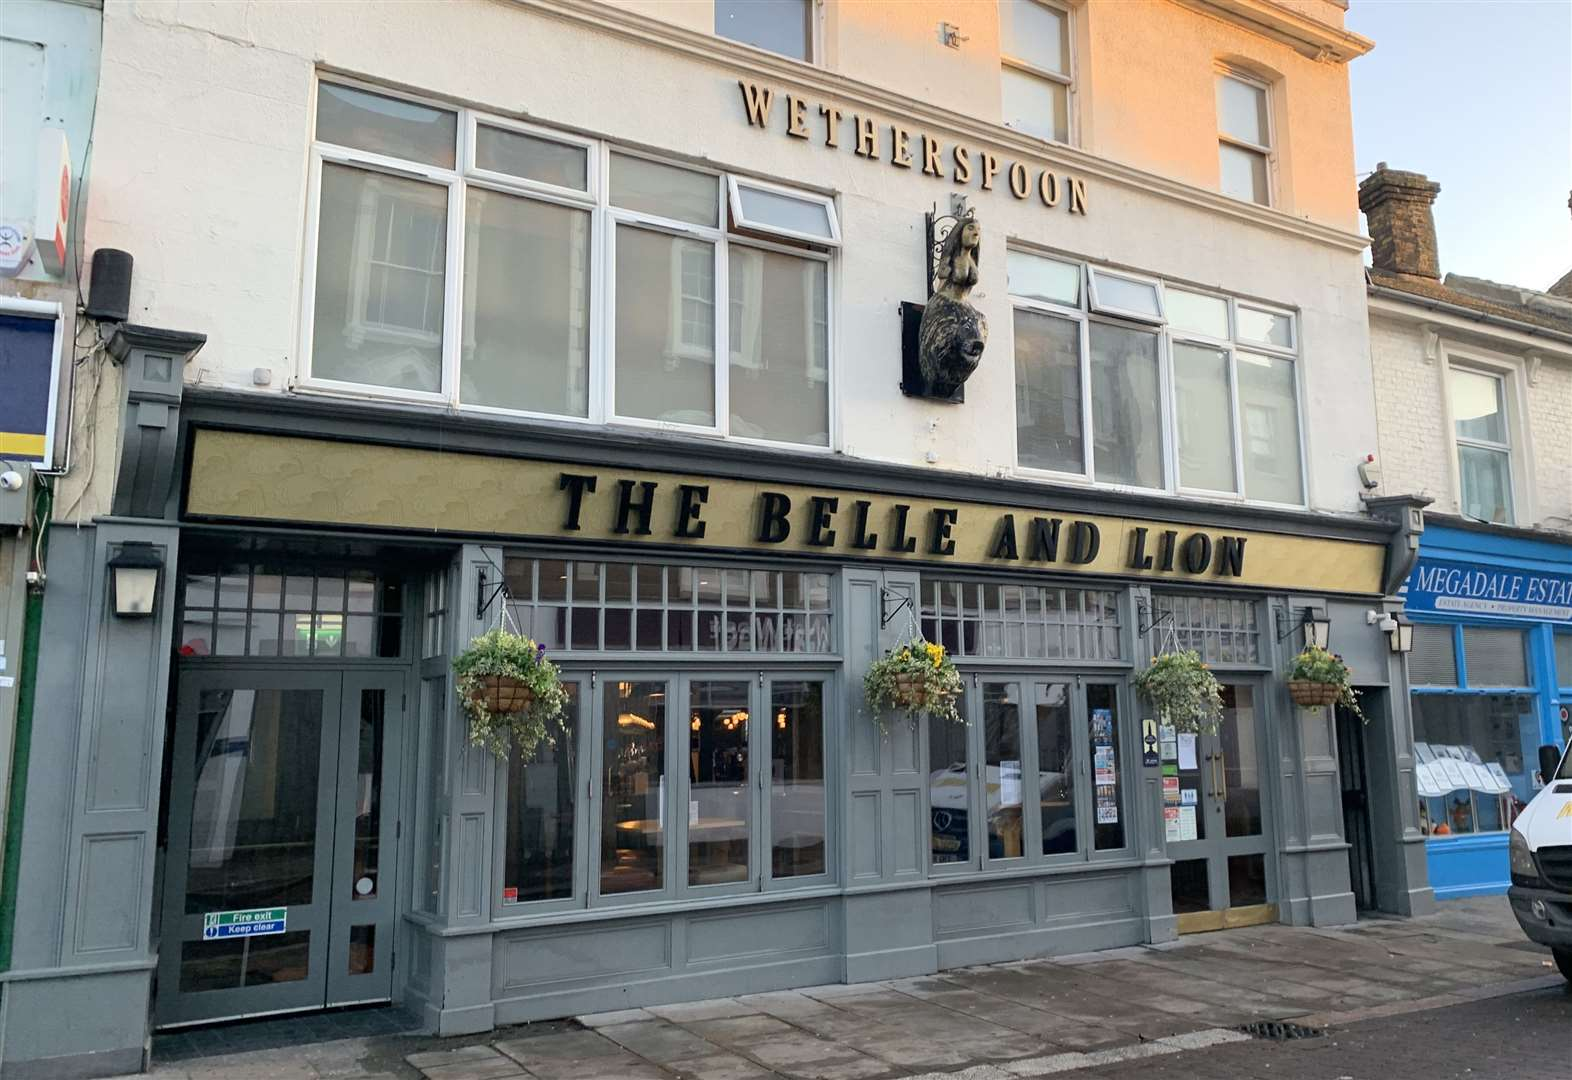 Wetherspoon closed after mice spotted